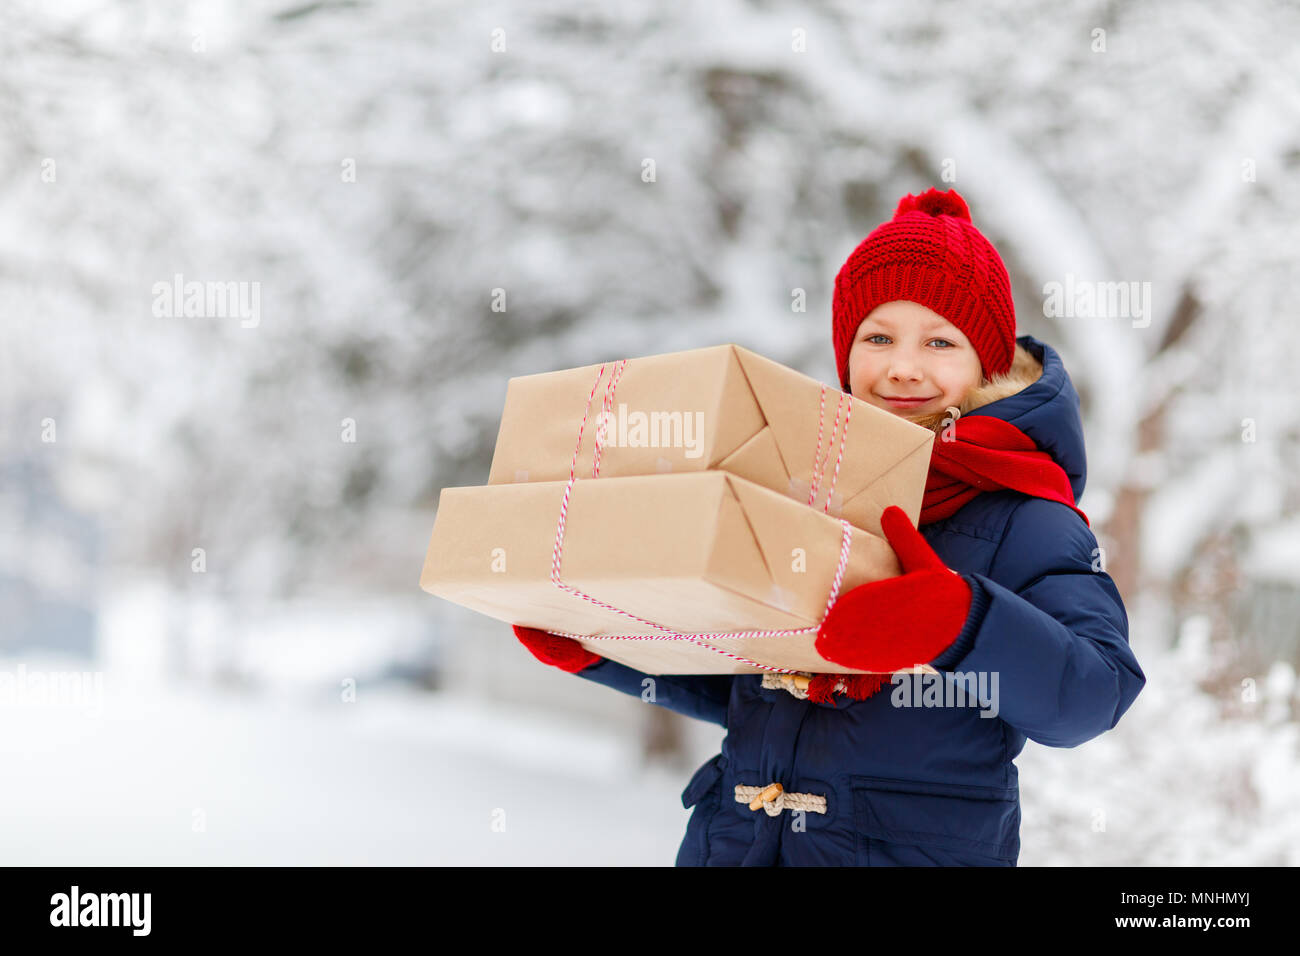 Adorable little girl wearing warm clothes outdoors on Christmas day holding gifts - Stock Image